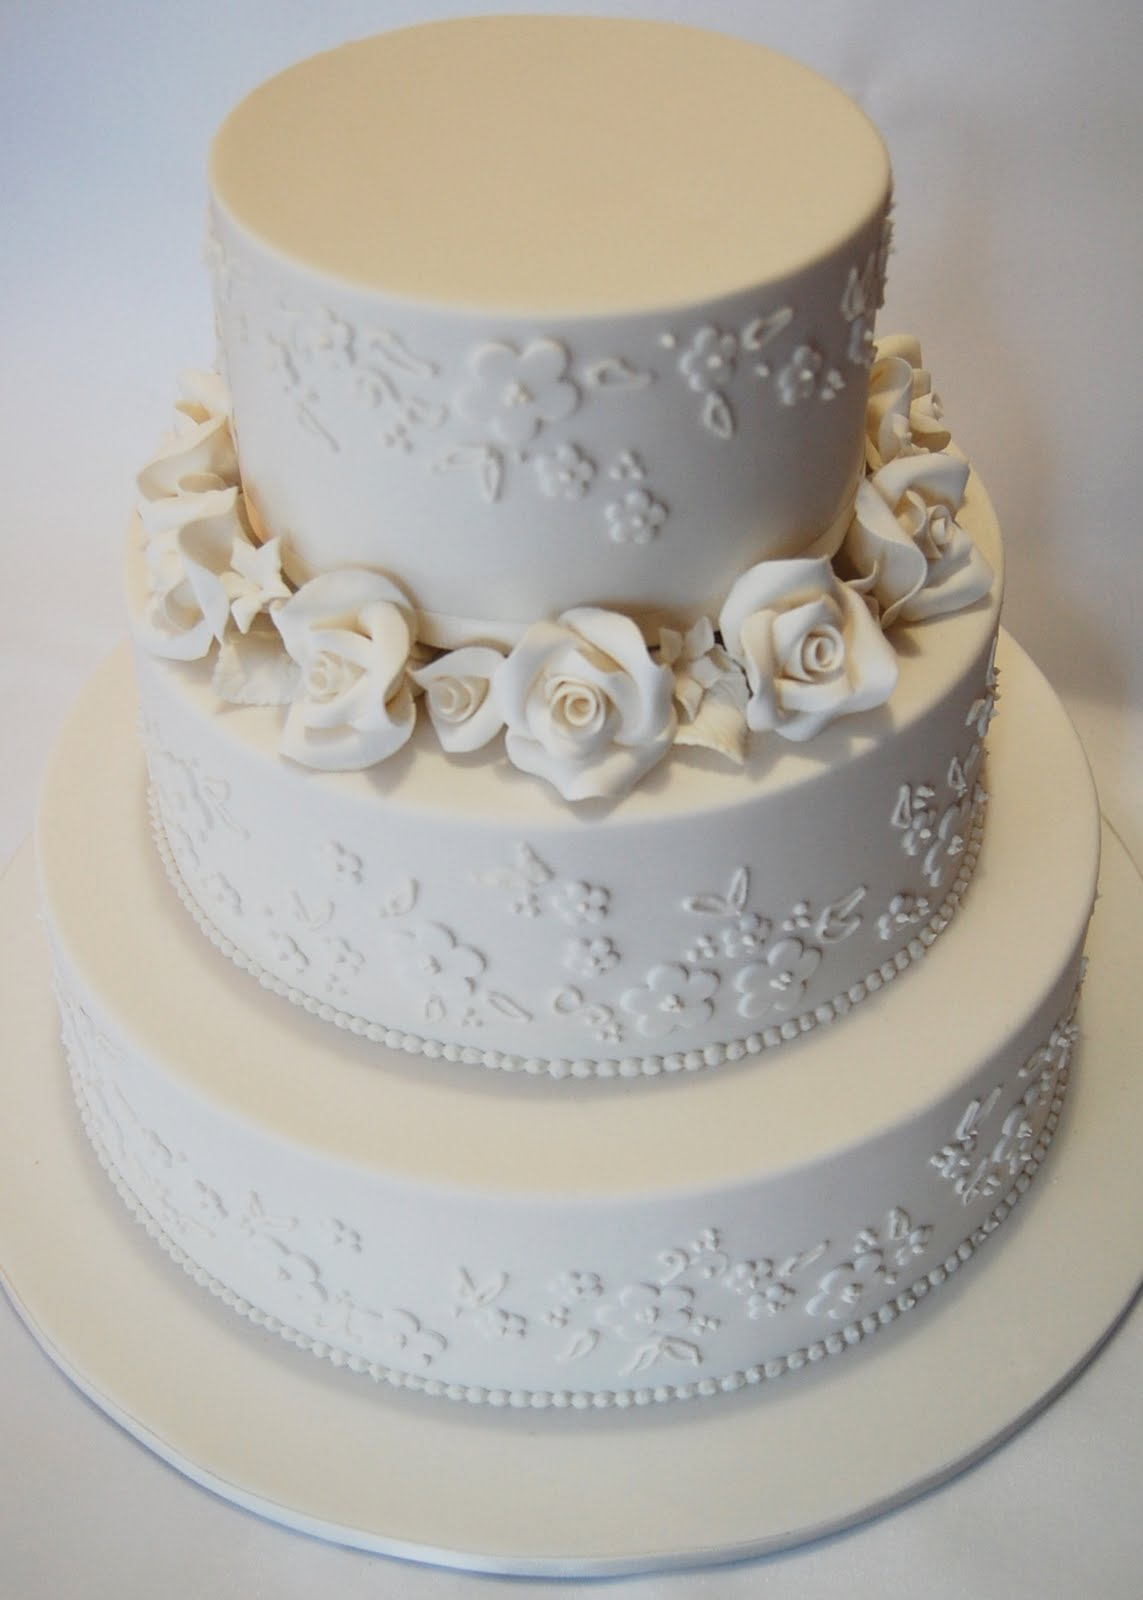 Edible Creations: Cake architecture